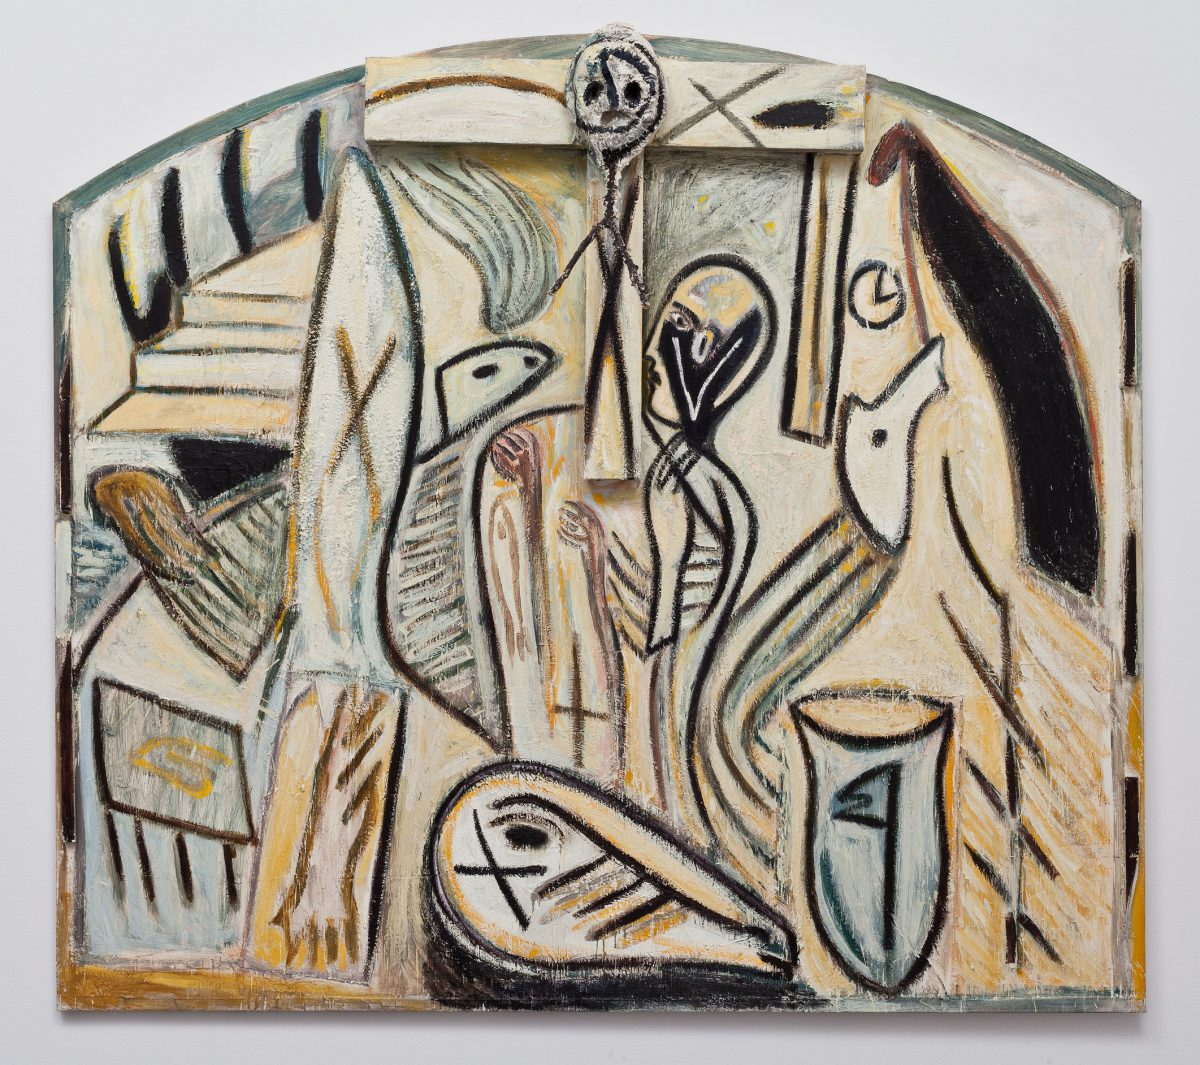 Untitled, 1985, Oil, encaustic and wood on canvas.